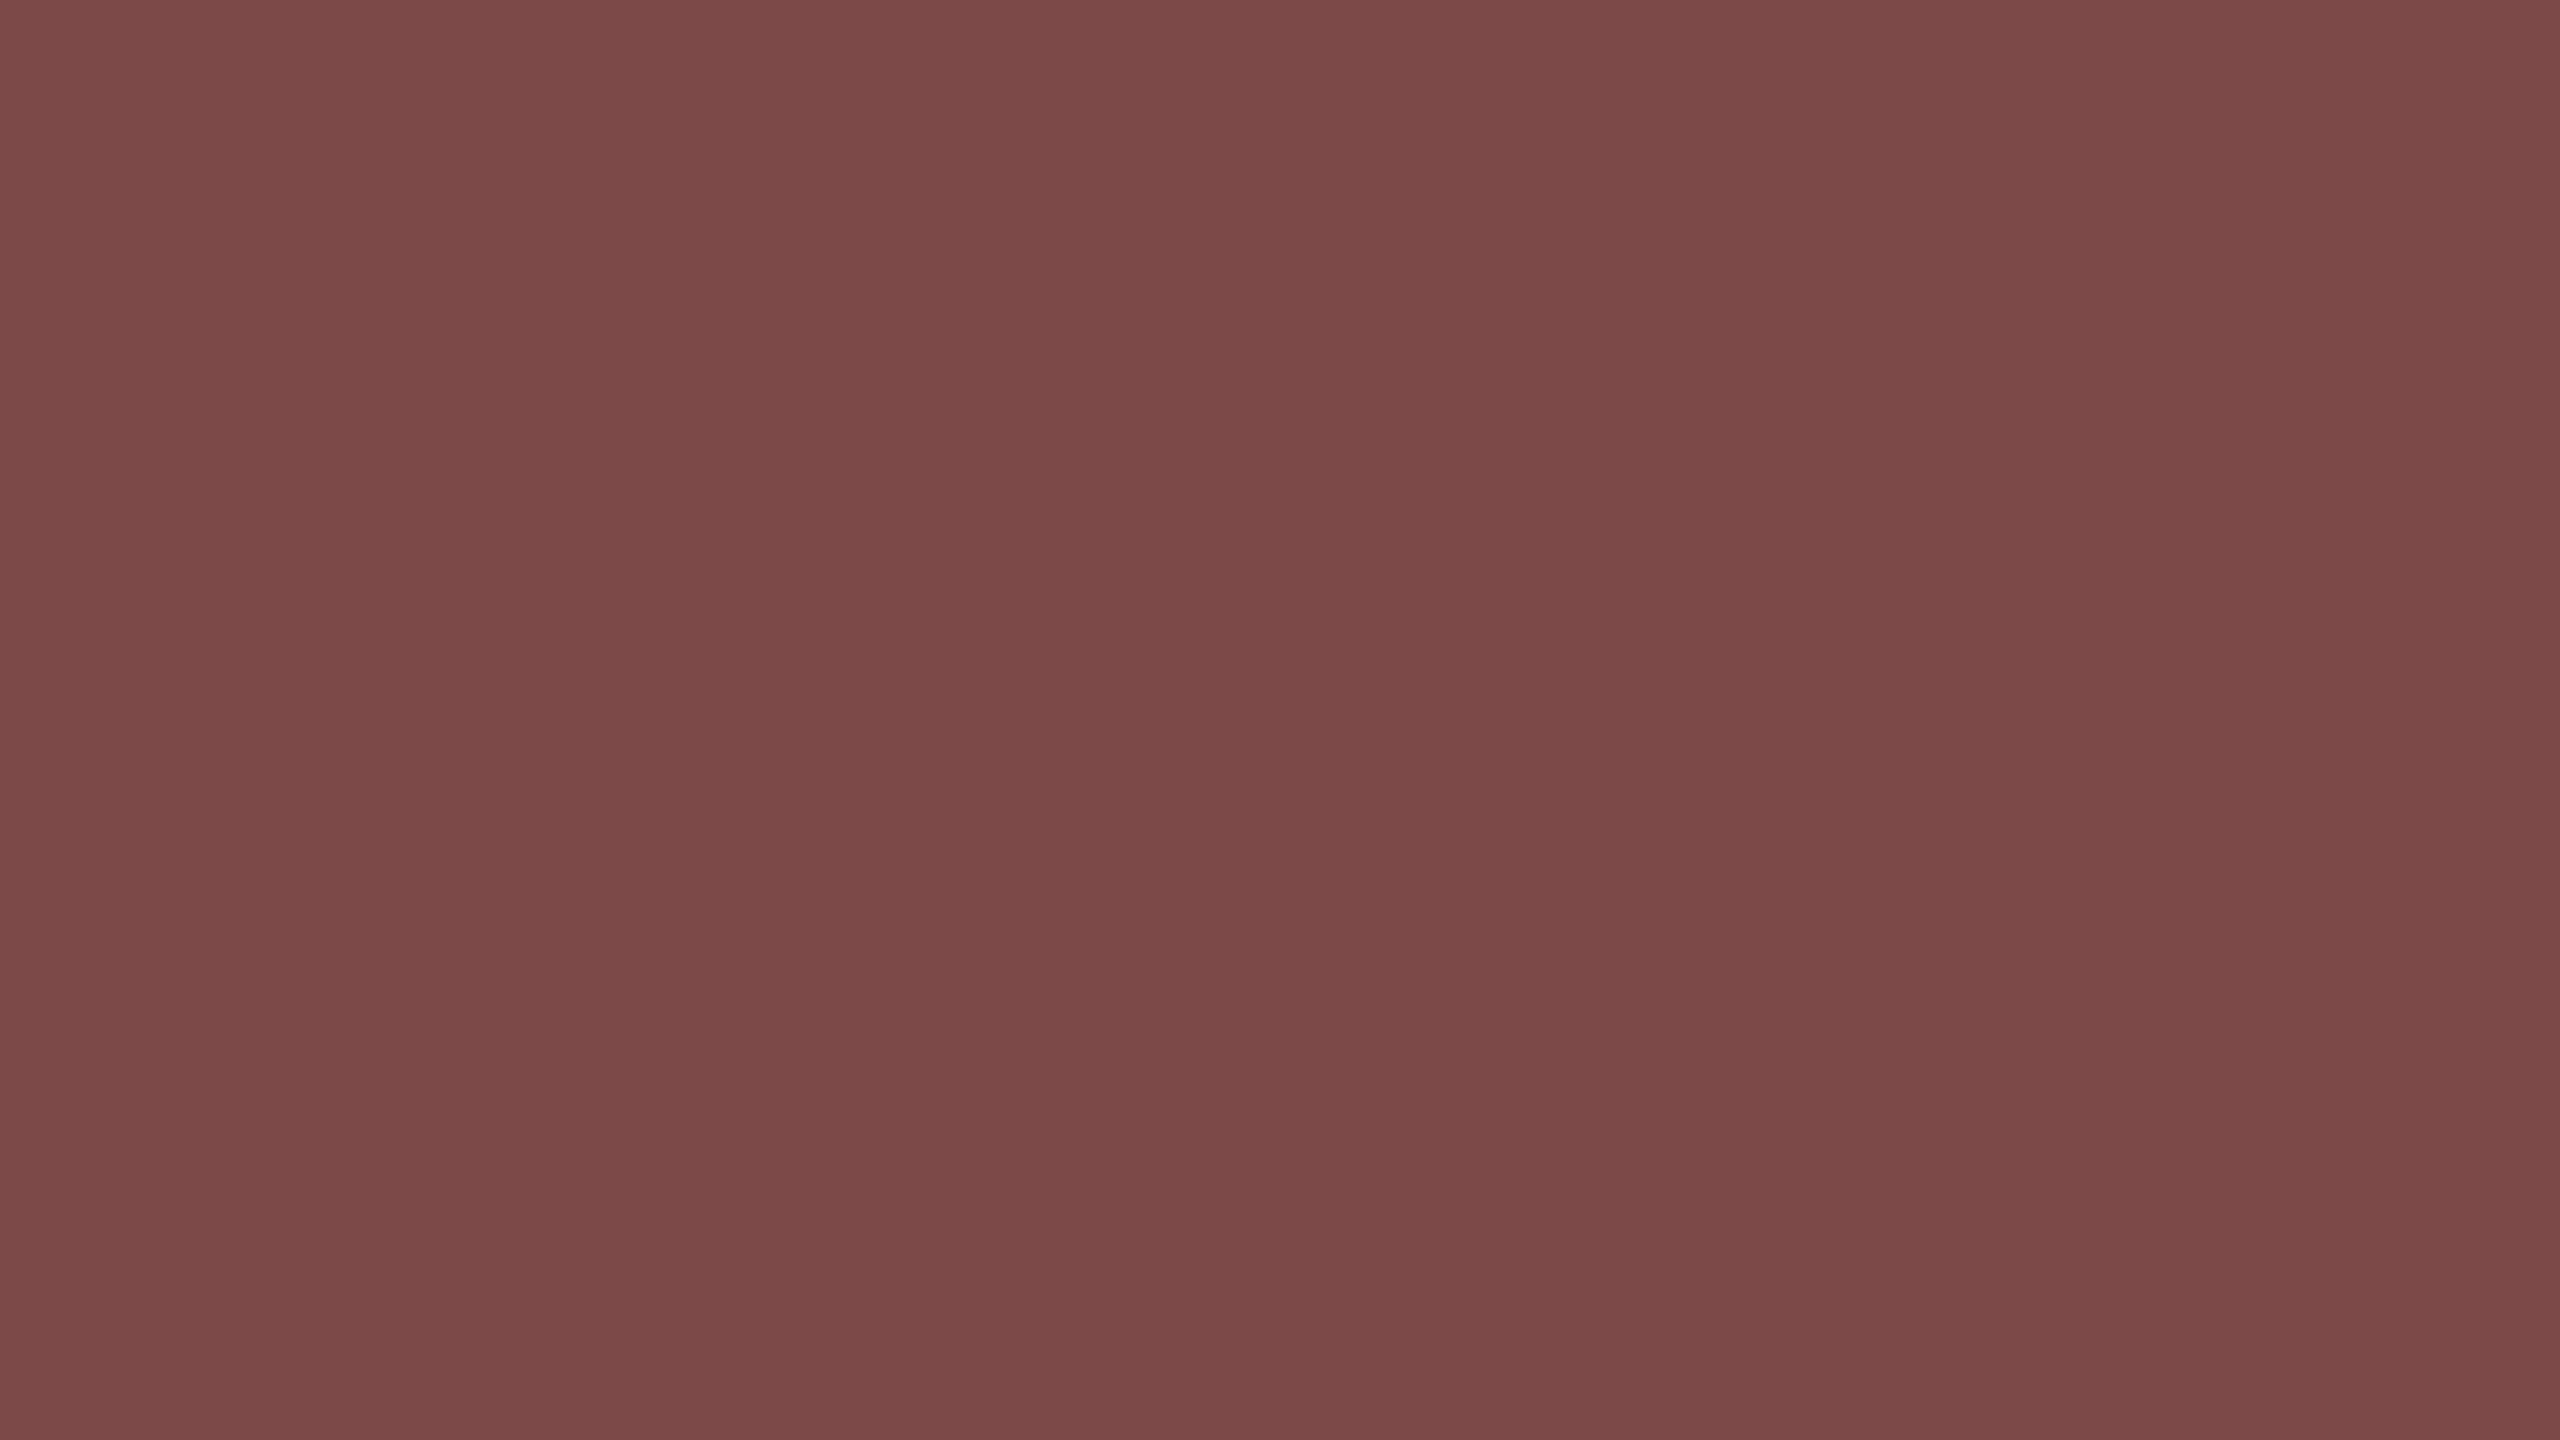 2560x1440 Tuscan Red Solid Color Background